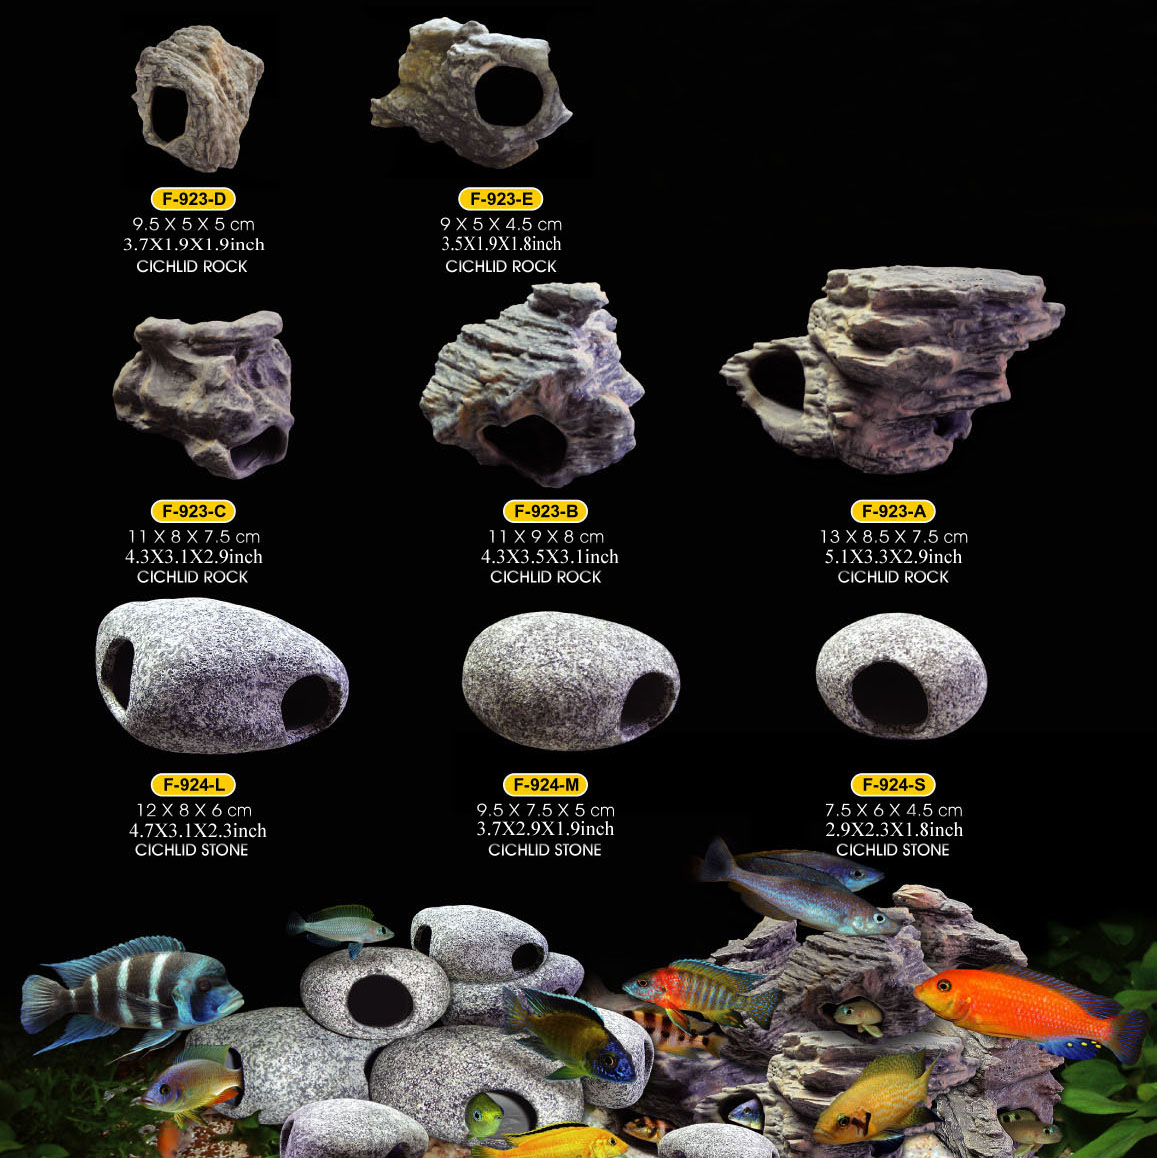 Large Aquarium Stones : Cichlid stones ceramic aquarium rock cave decoration for